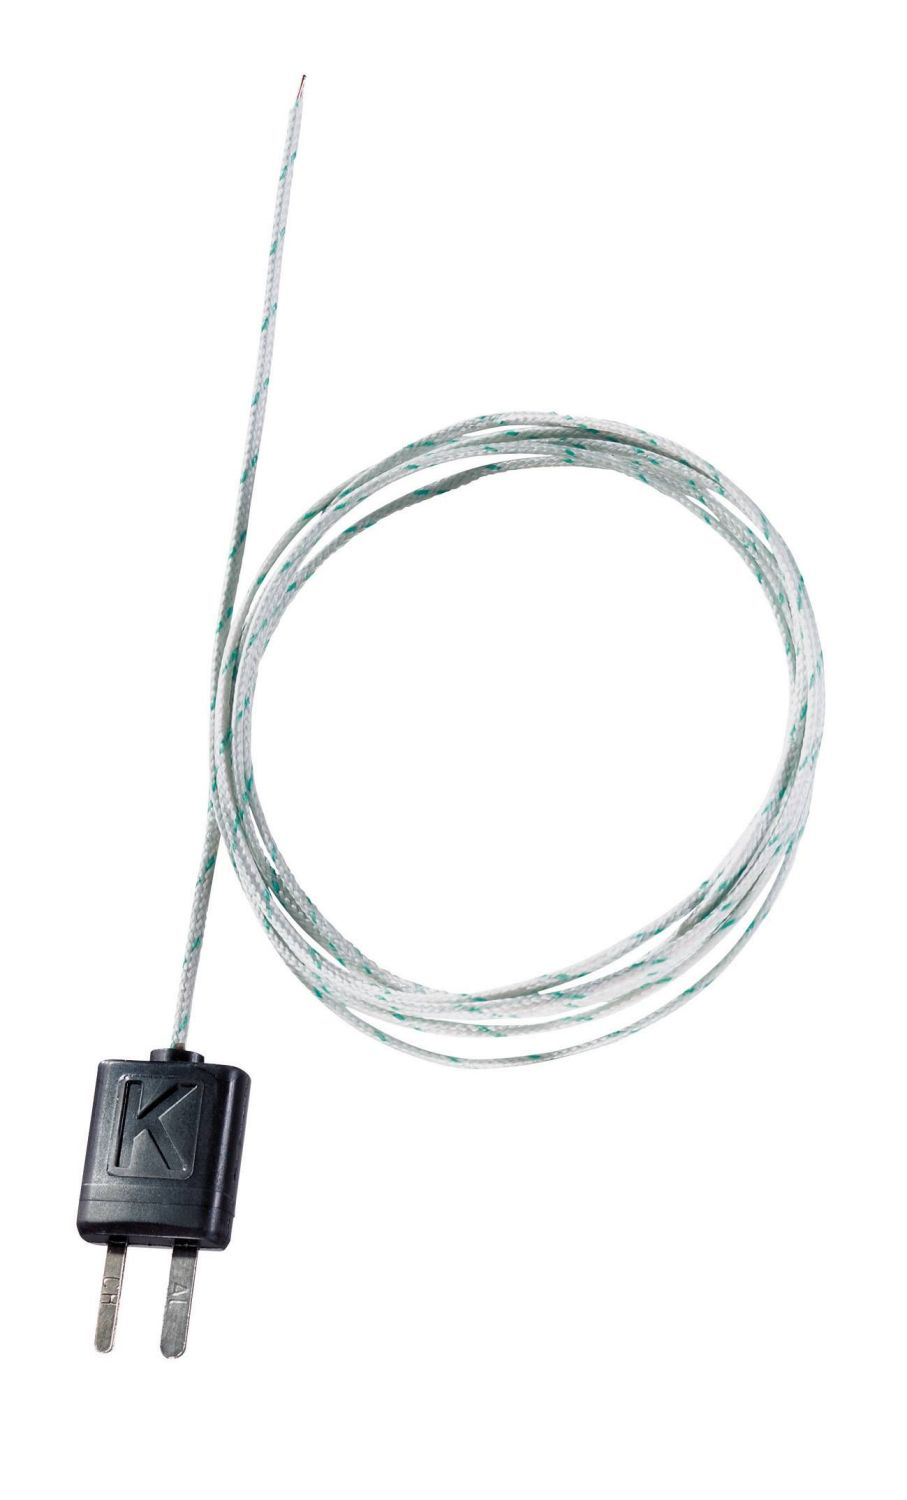 Thermocouple isolé, soie de verre, flexible, long. 1500 mm